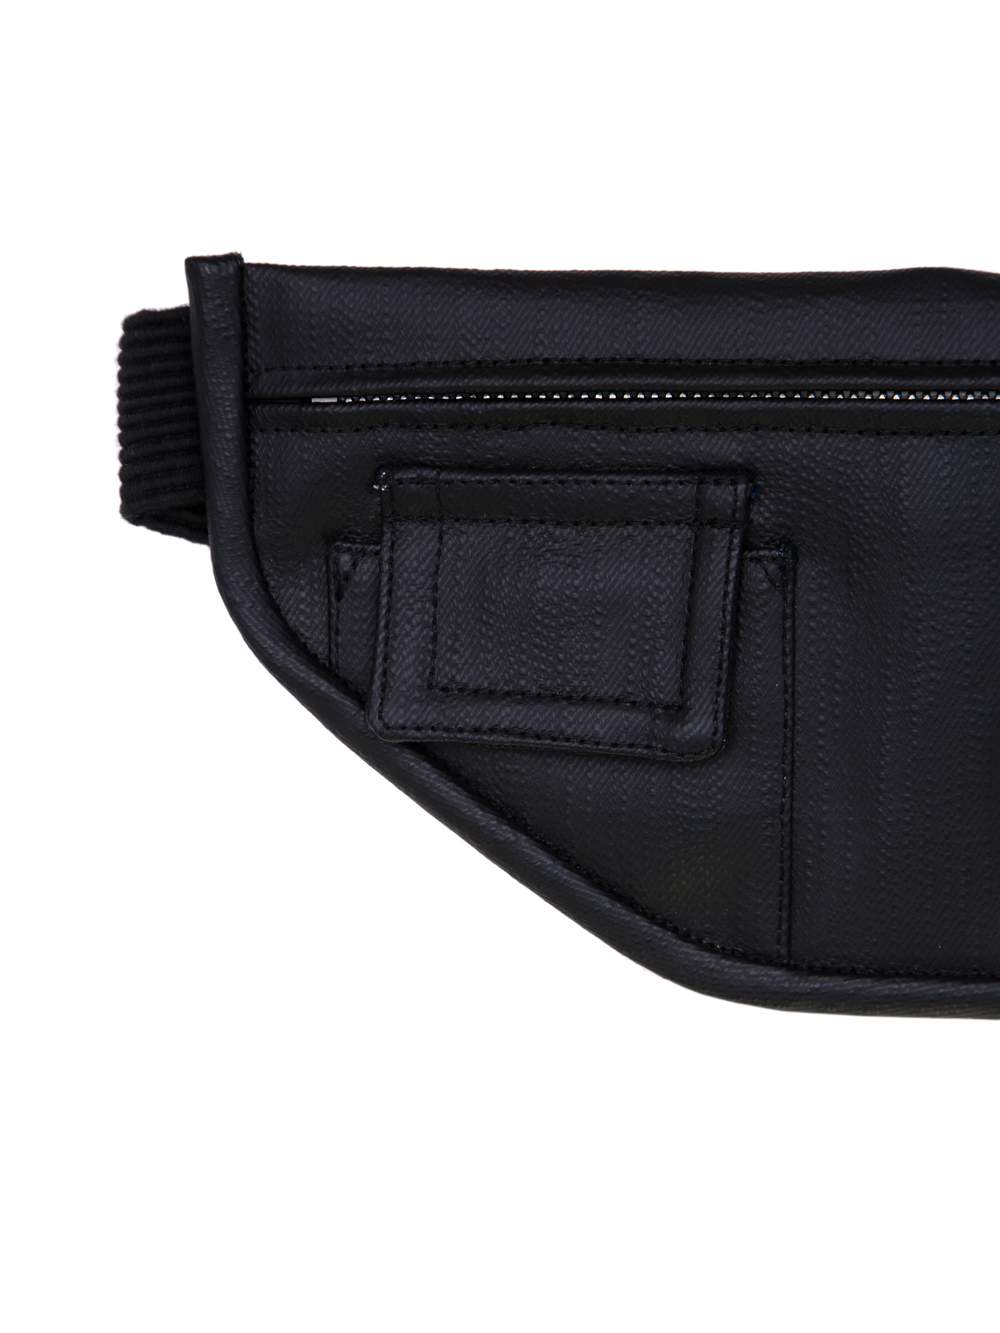 RICK OWENS SS19 BABEL MONEY BELT IN BLACK MATT DENIM